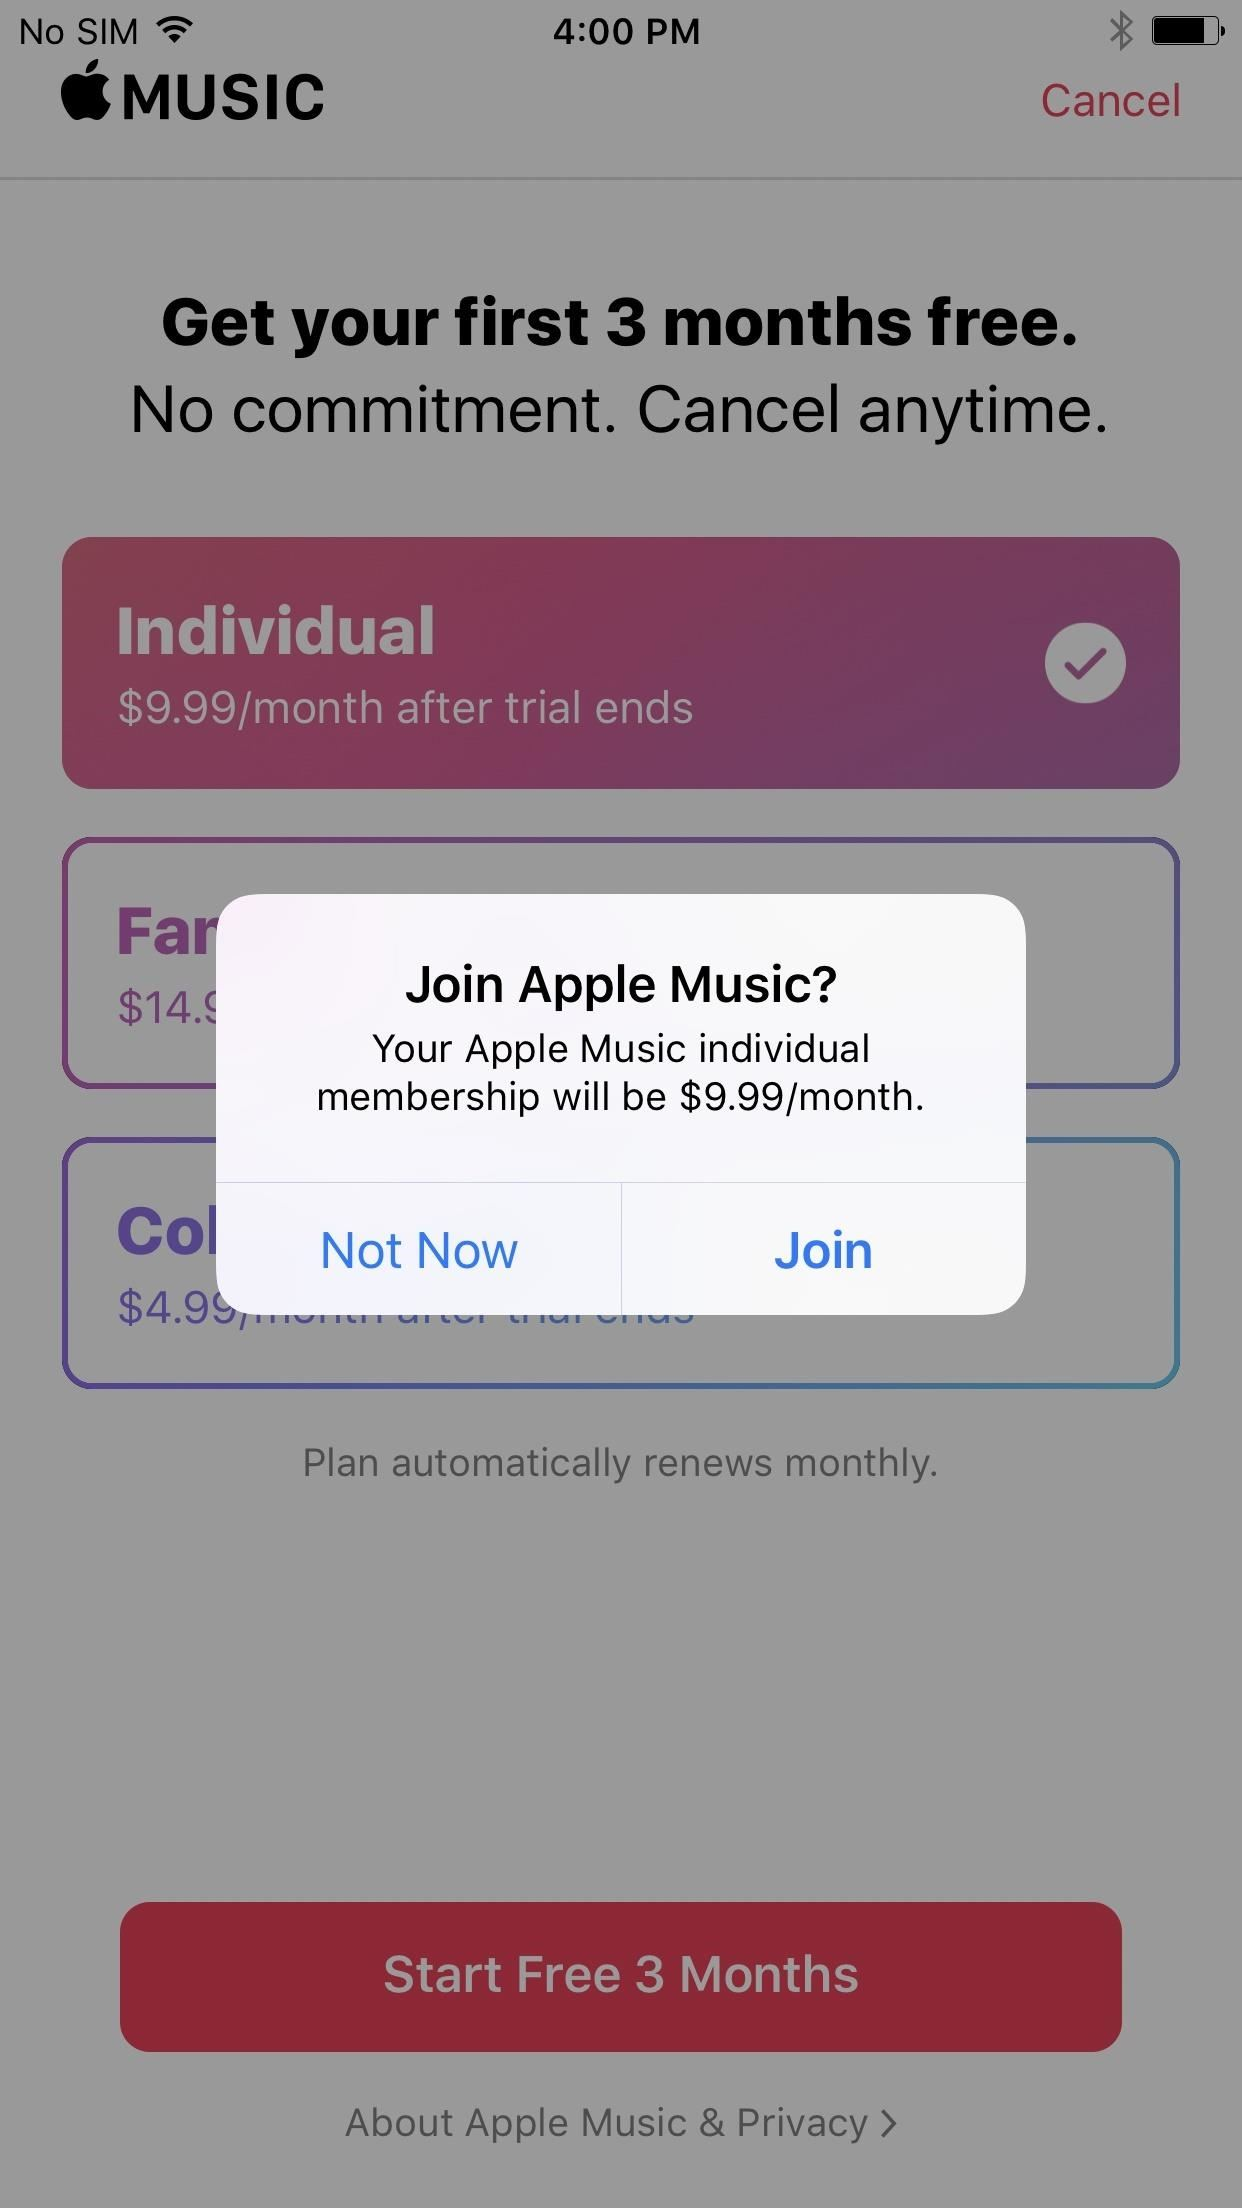 How to Disable Apple Music's Auto-Renewal for Free Trials So You Don't Get Charged